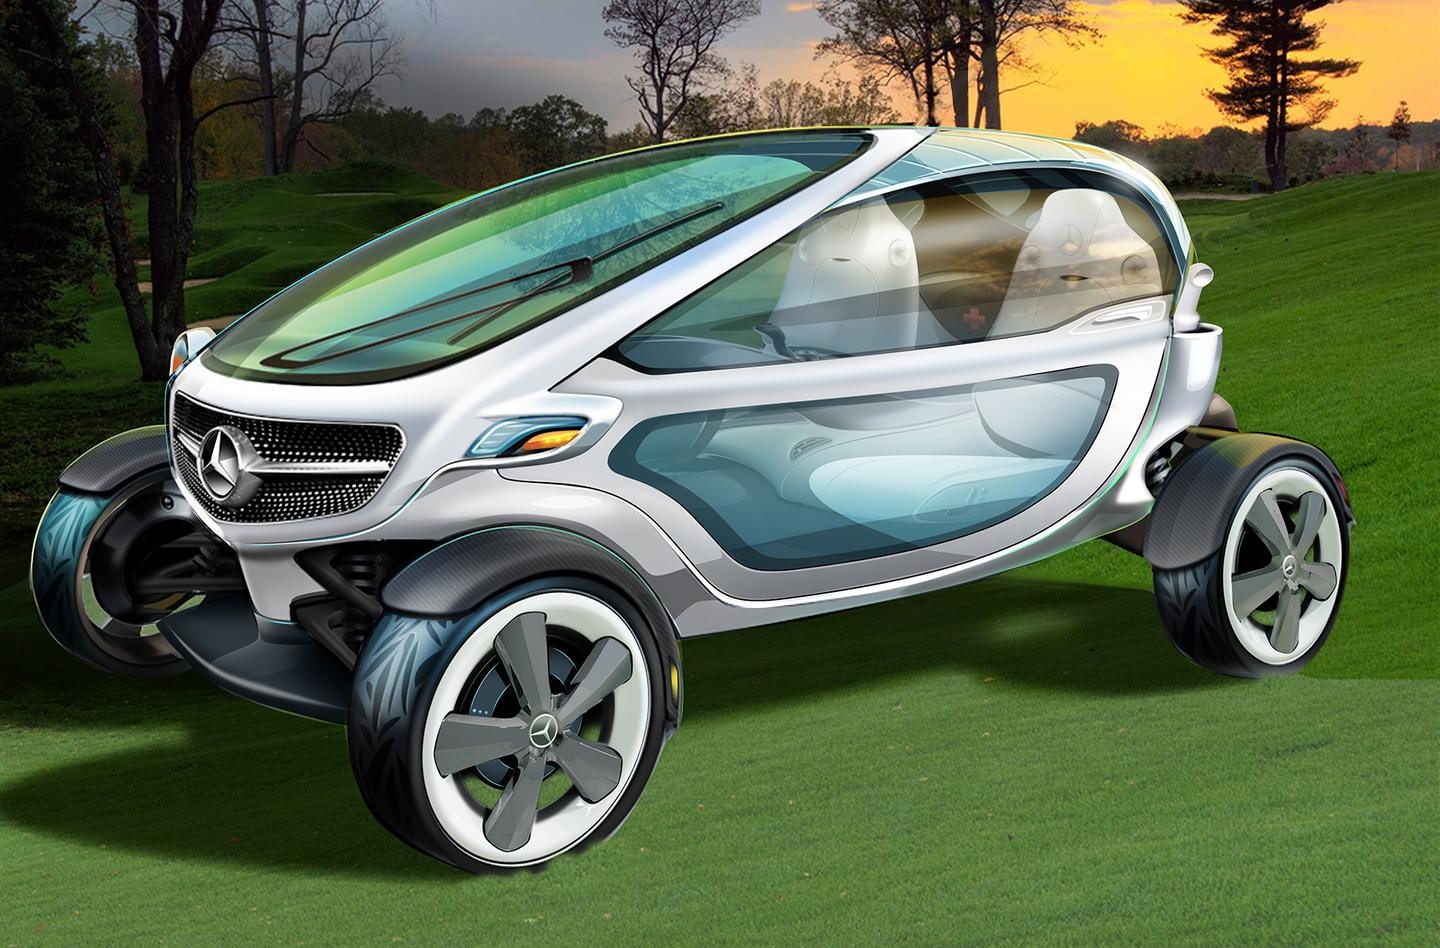 The Mercedes Vision Golf Cart includes two removable click-on doors